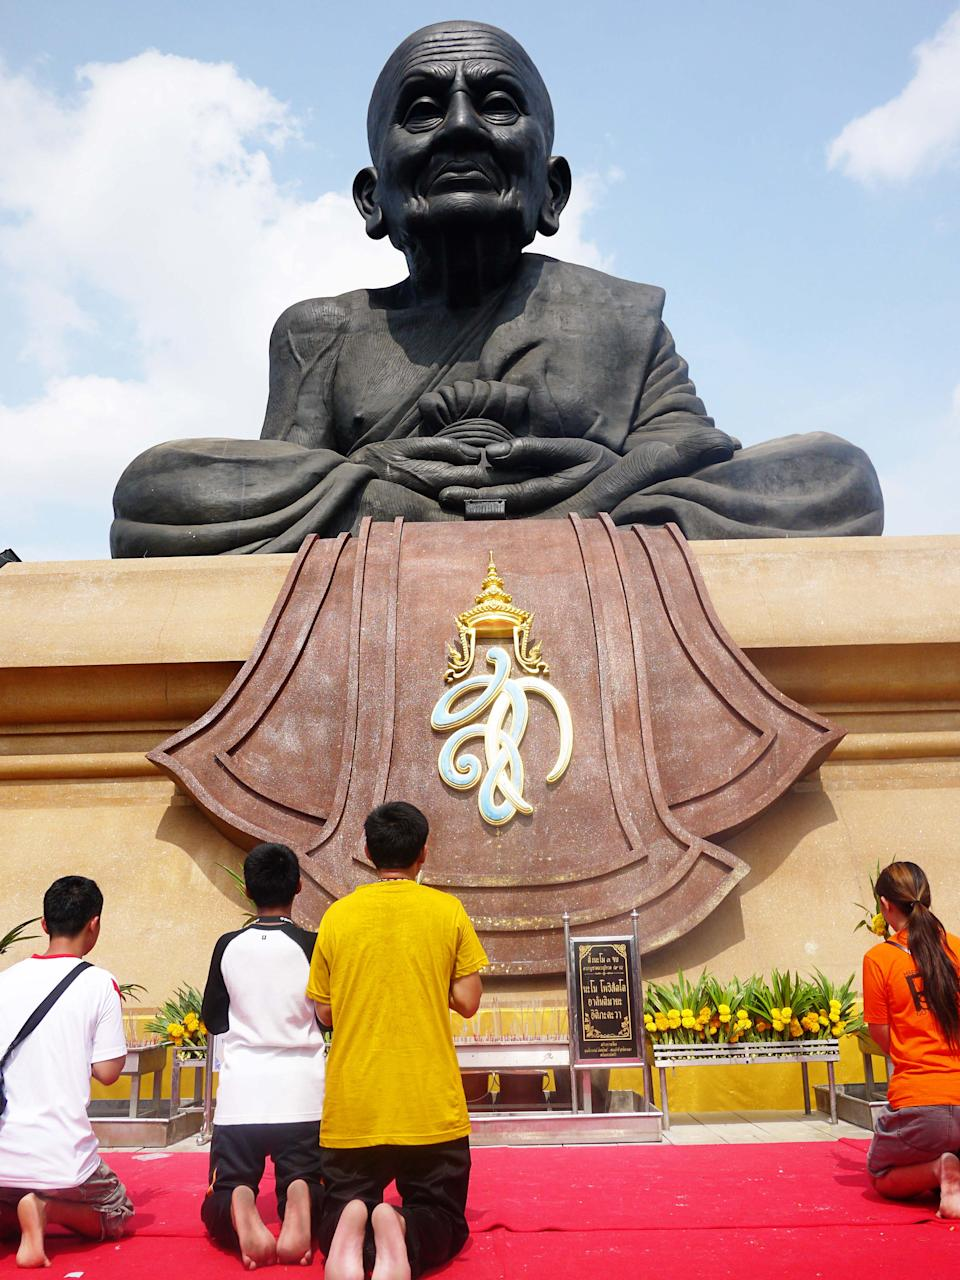 <p>For Thais to continue paying their respect to the monk, the Queen of Thailand commission the building of the temple and the statue, which is found in a park-like setting. Tourists – both locals and from abroad – make their way here by the busloads to see this 12 X 10 metres statue set on a large mound. Take the stairs up and pay your respect along with the locals. It can be hard to find a spot as the area is usually crowded but be patient and you'll have your chance to be up close. Or why not visit during a religious day? The temple – and the statue – will be surrounded by monks who would have travelled from different parts of the country to worship. It will be quite a spectacular sight!</p>